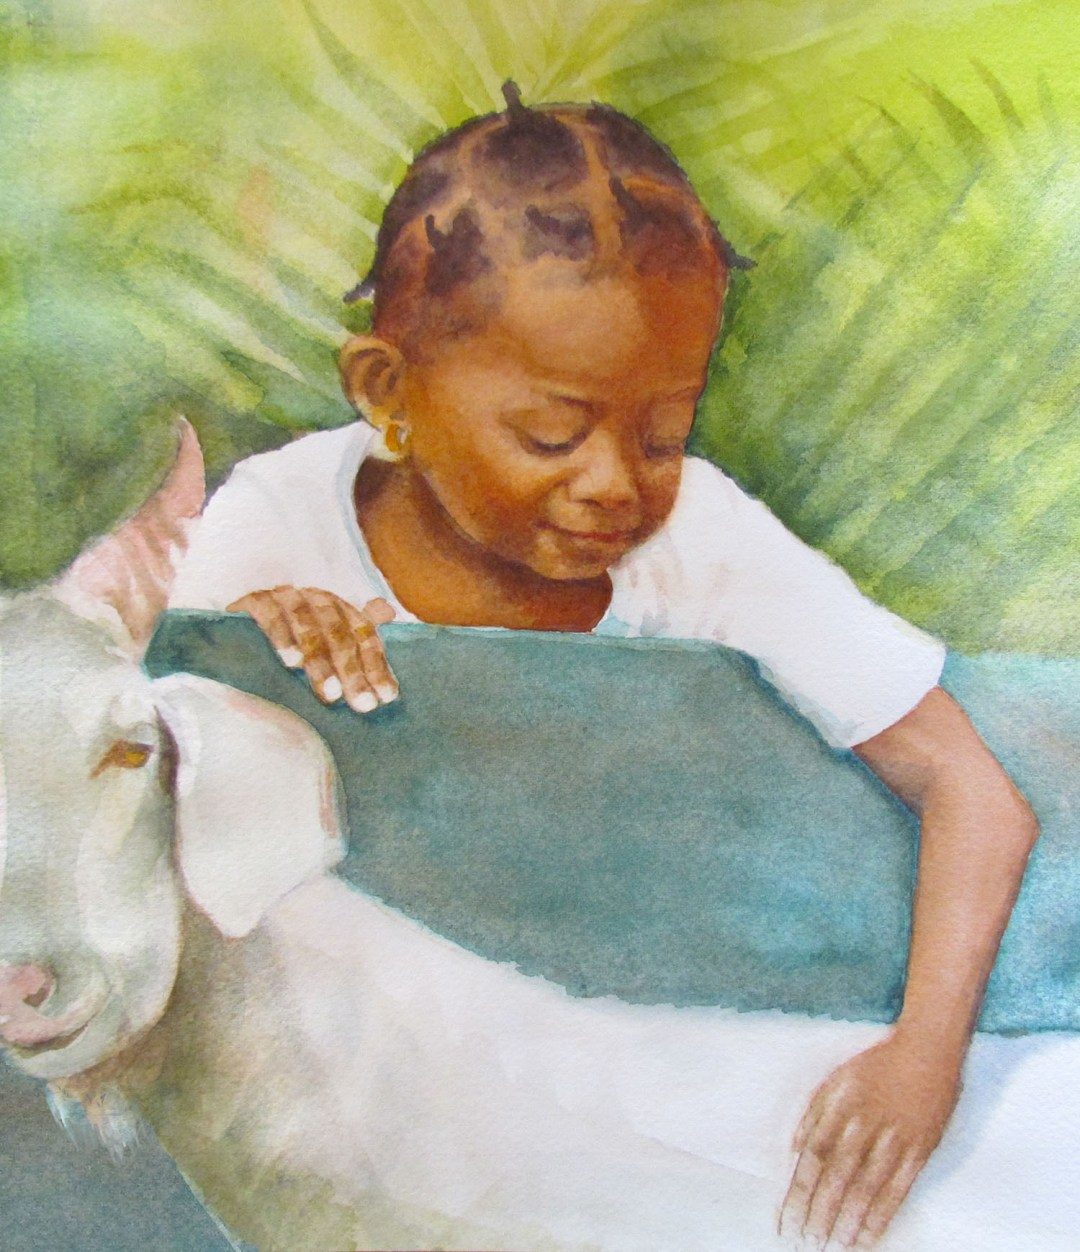 YOUNG GIRL AND A GOAT